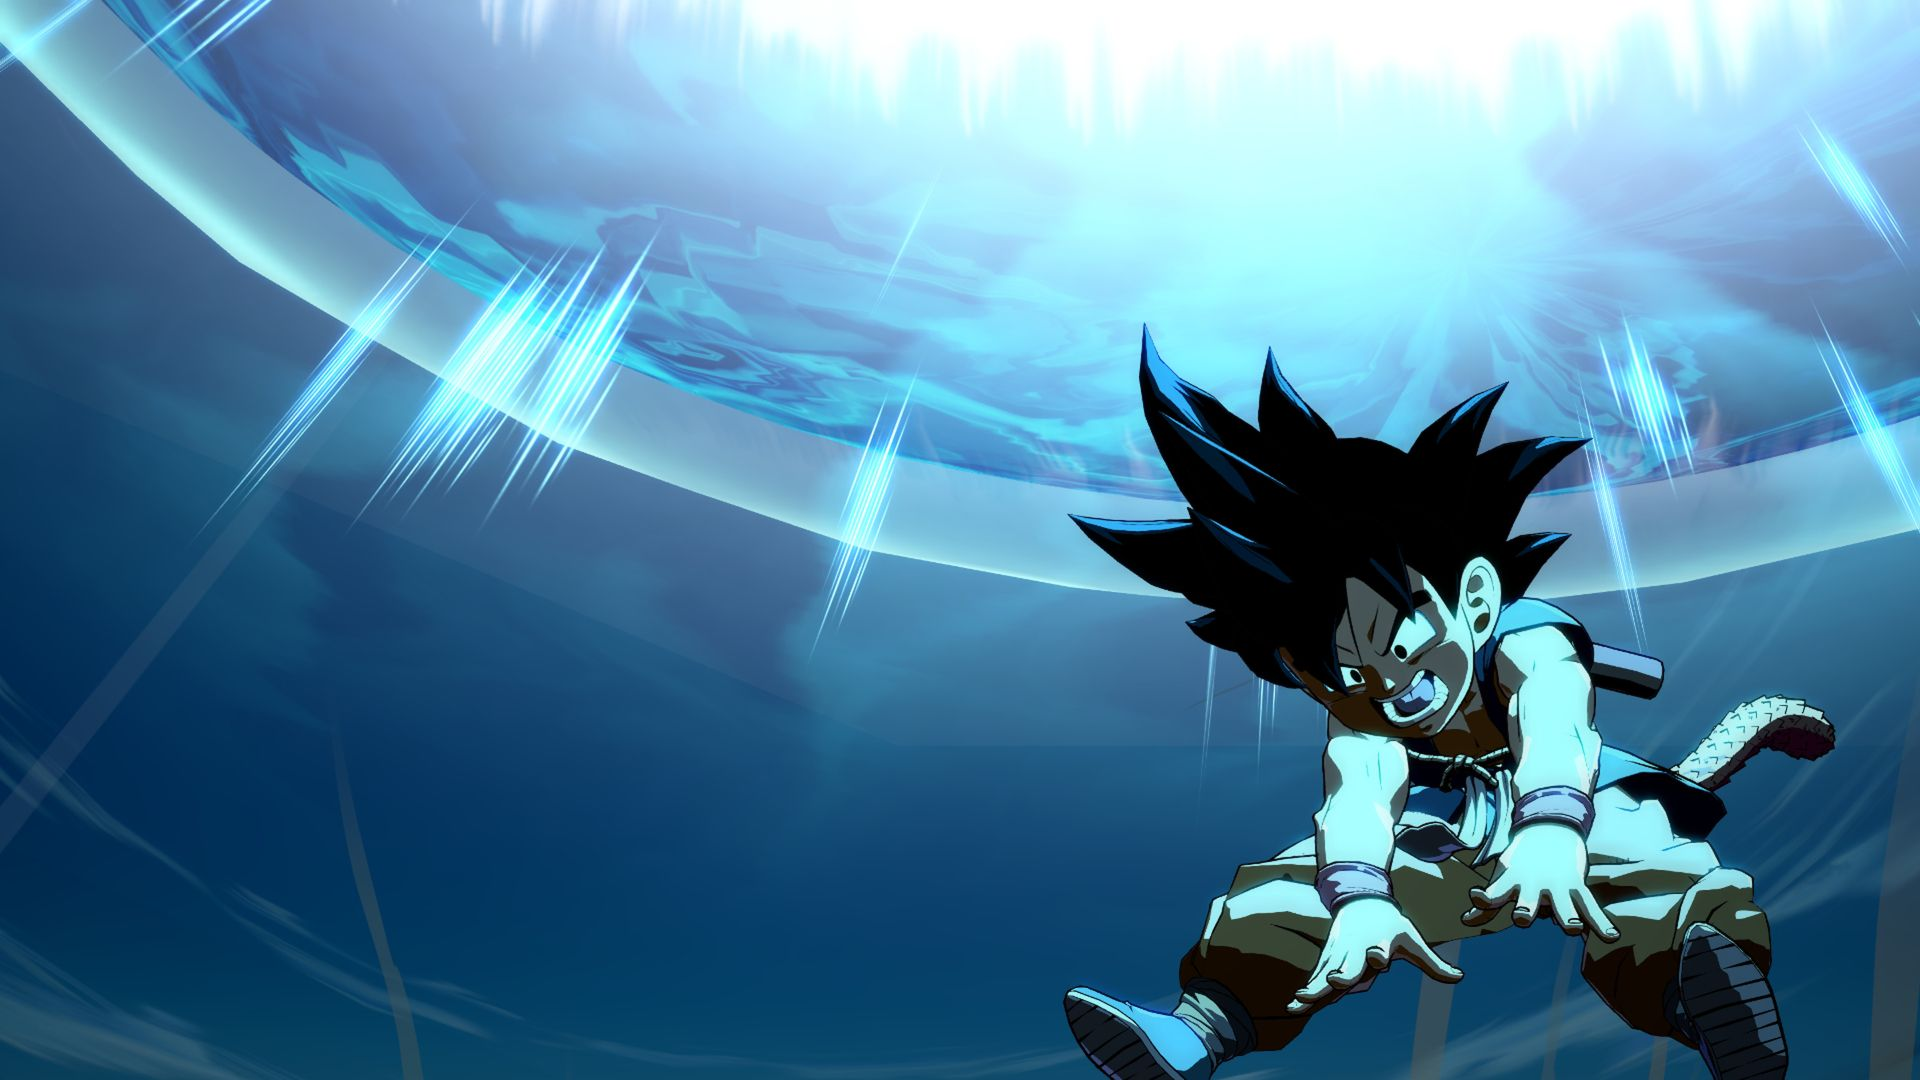 1920x1080 Anime Goku Wallpapers Wallpaper Cave